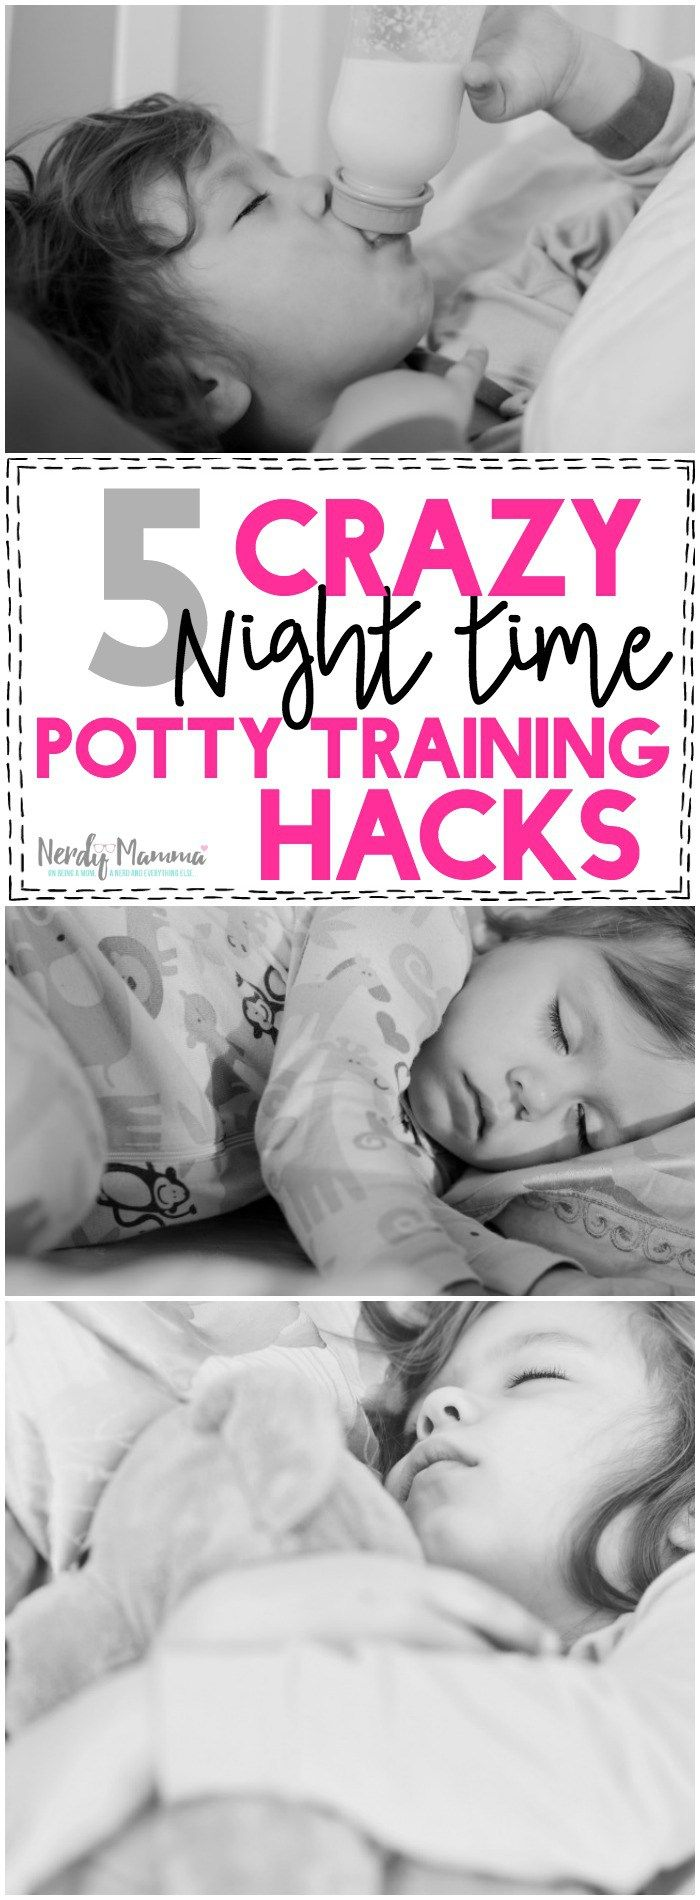 Oh man! This mom totally wins the Ms. Potty Training Mom of the Year Award! Two at once! I can't believe she doesn't have more than these 5 crazy nighttime potty training hacks! LOL!